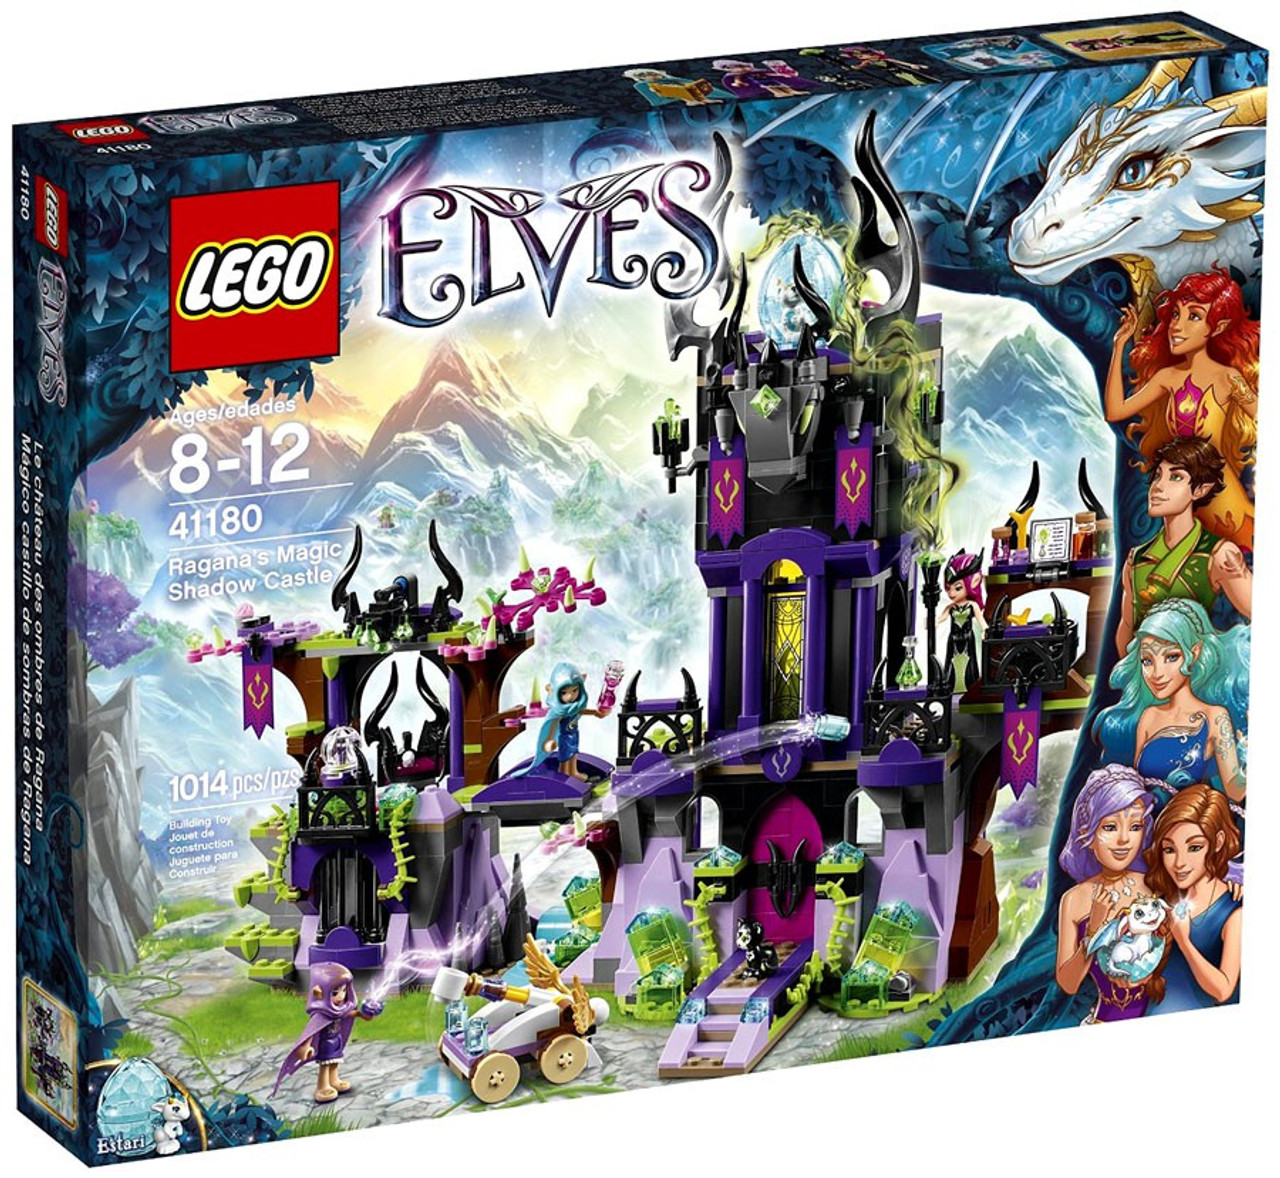 Shadow Set Elves Lego Magic Raganas 41180 Castle Toywiz mNnv8w0O